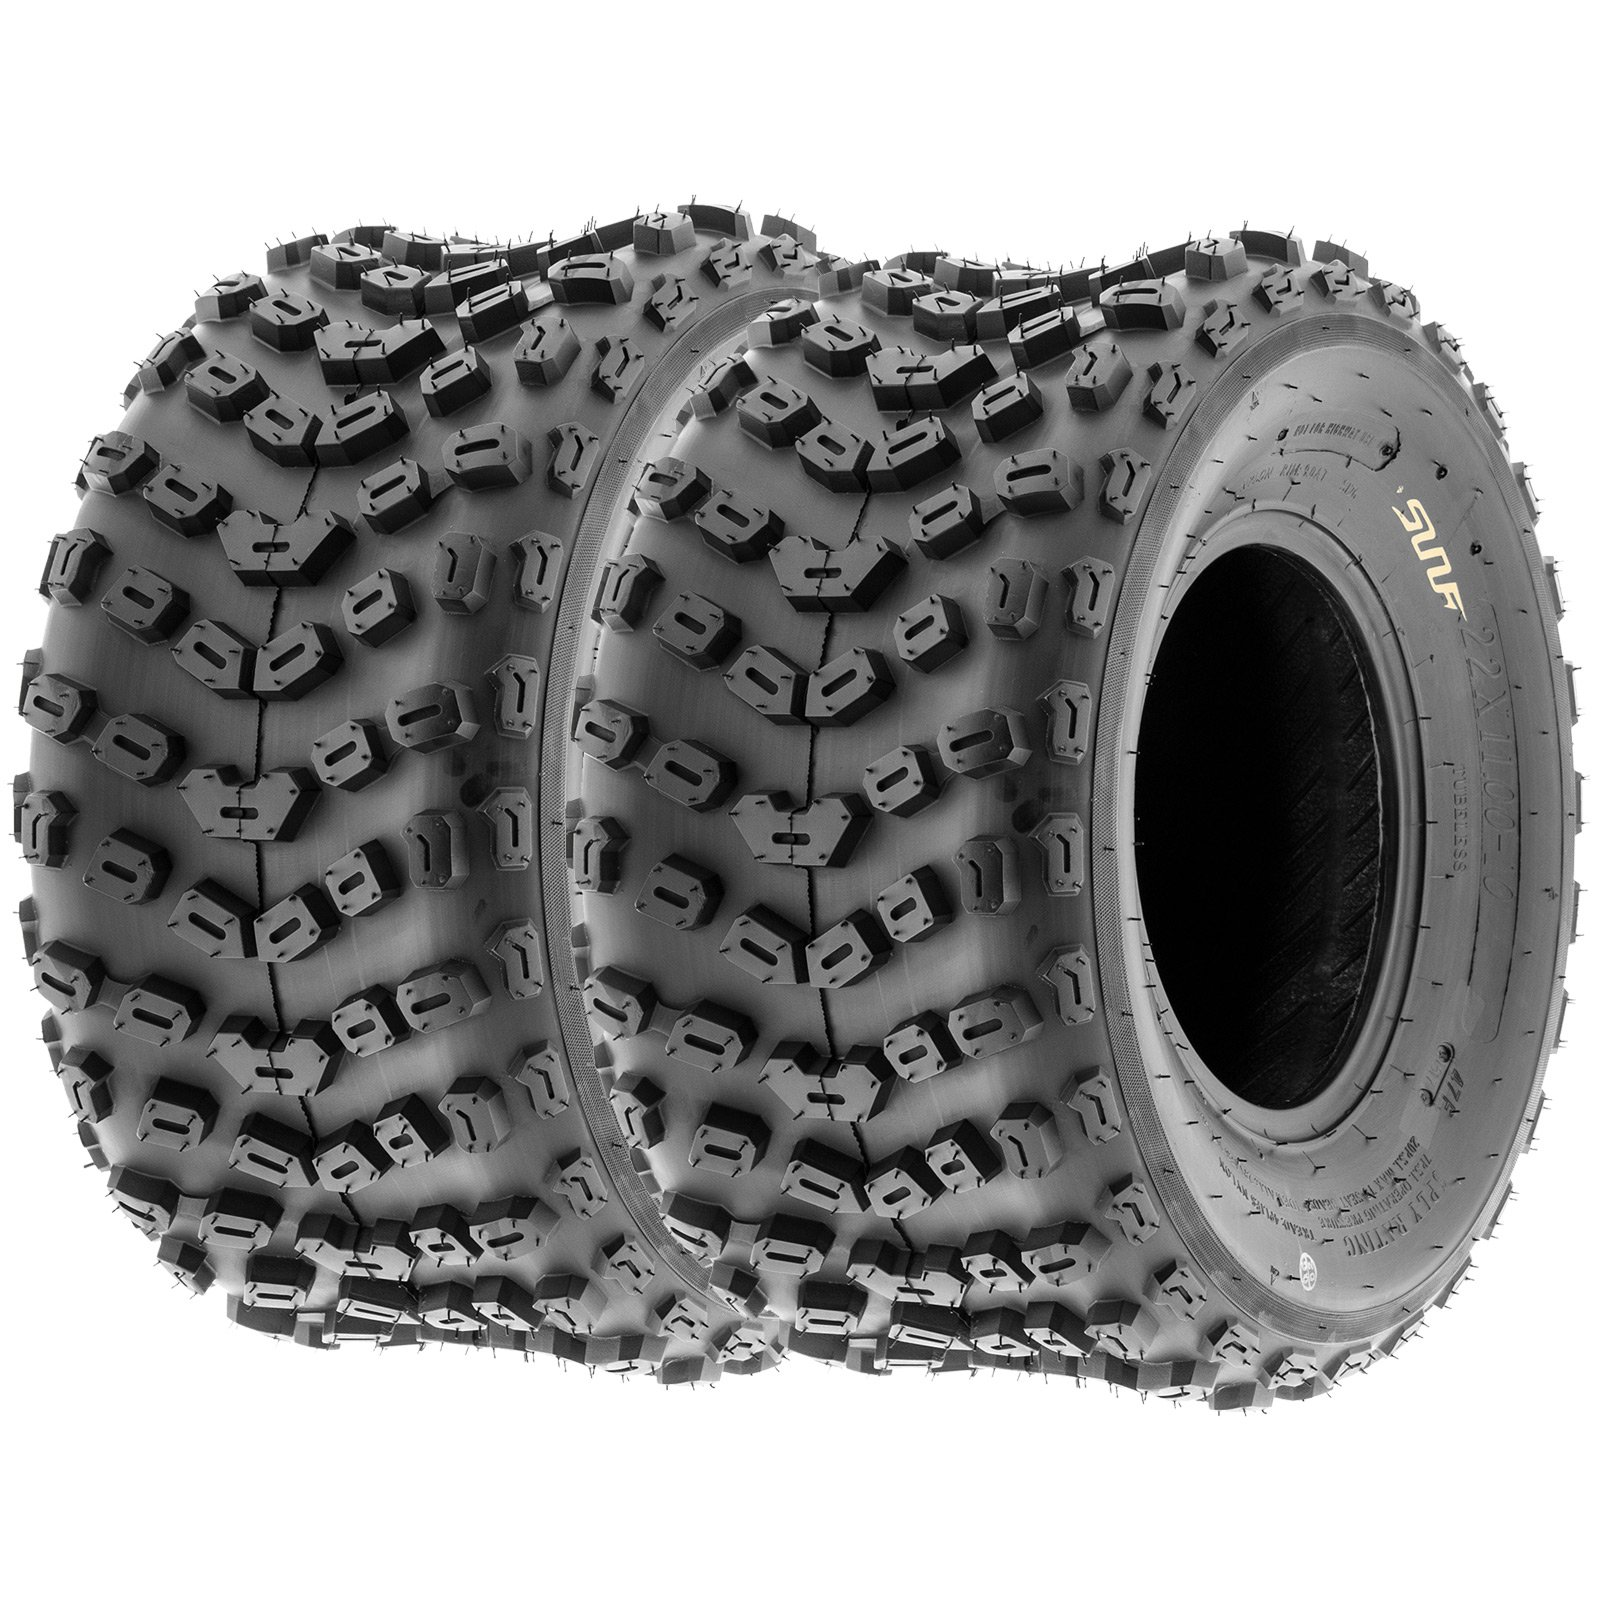 SunF ATV Dimple Knobby Sport Tires 22x11-10 22x11x10 4 PLY A005 (Set pair of 2)